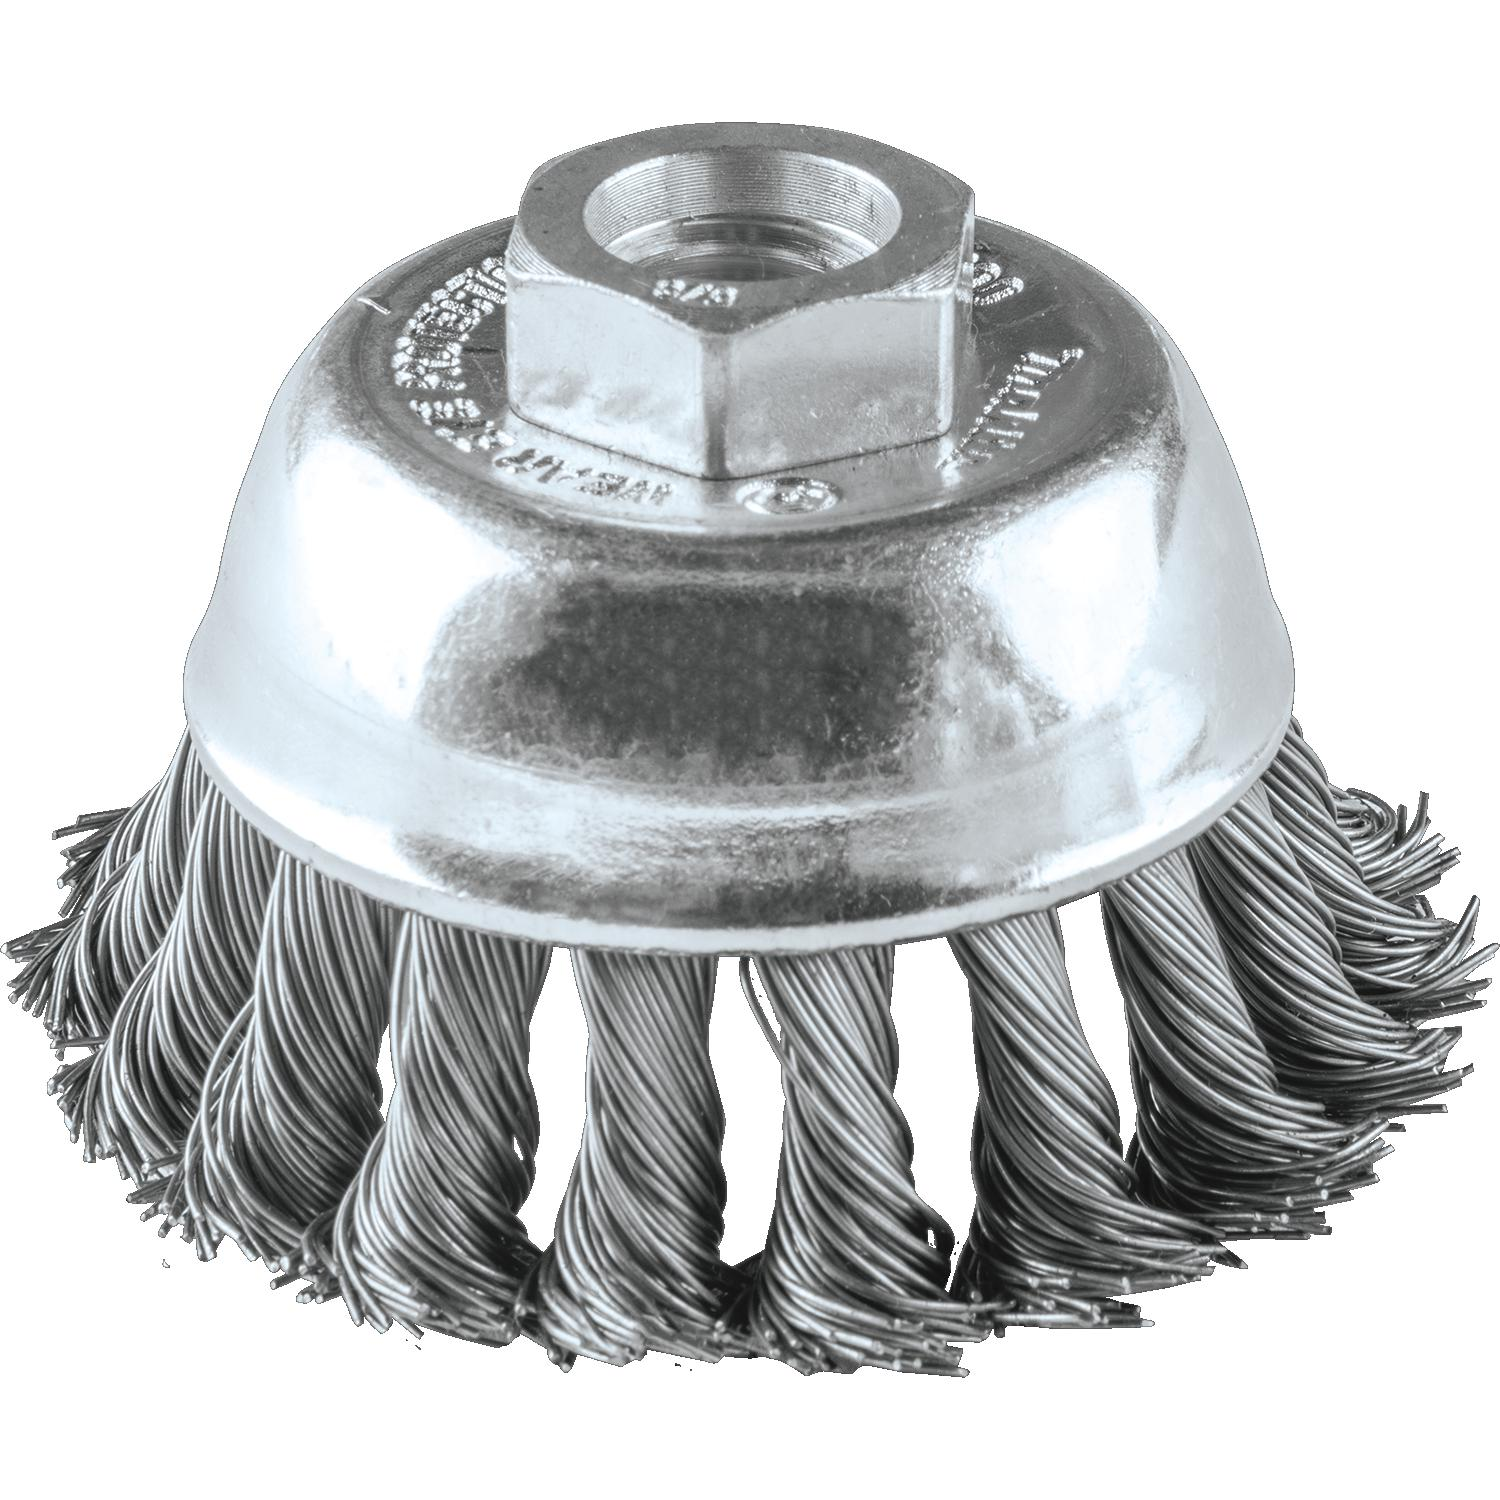 2-3/4″ KNOTTED WIRE CUP BRUSH